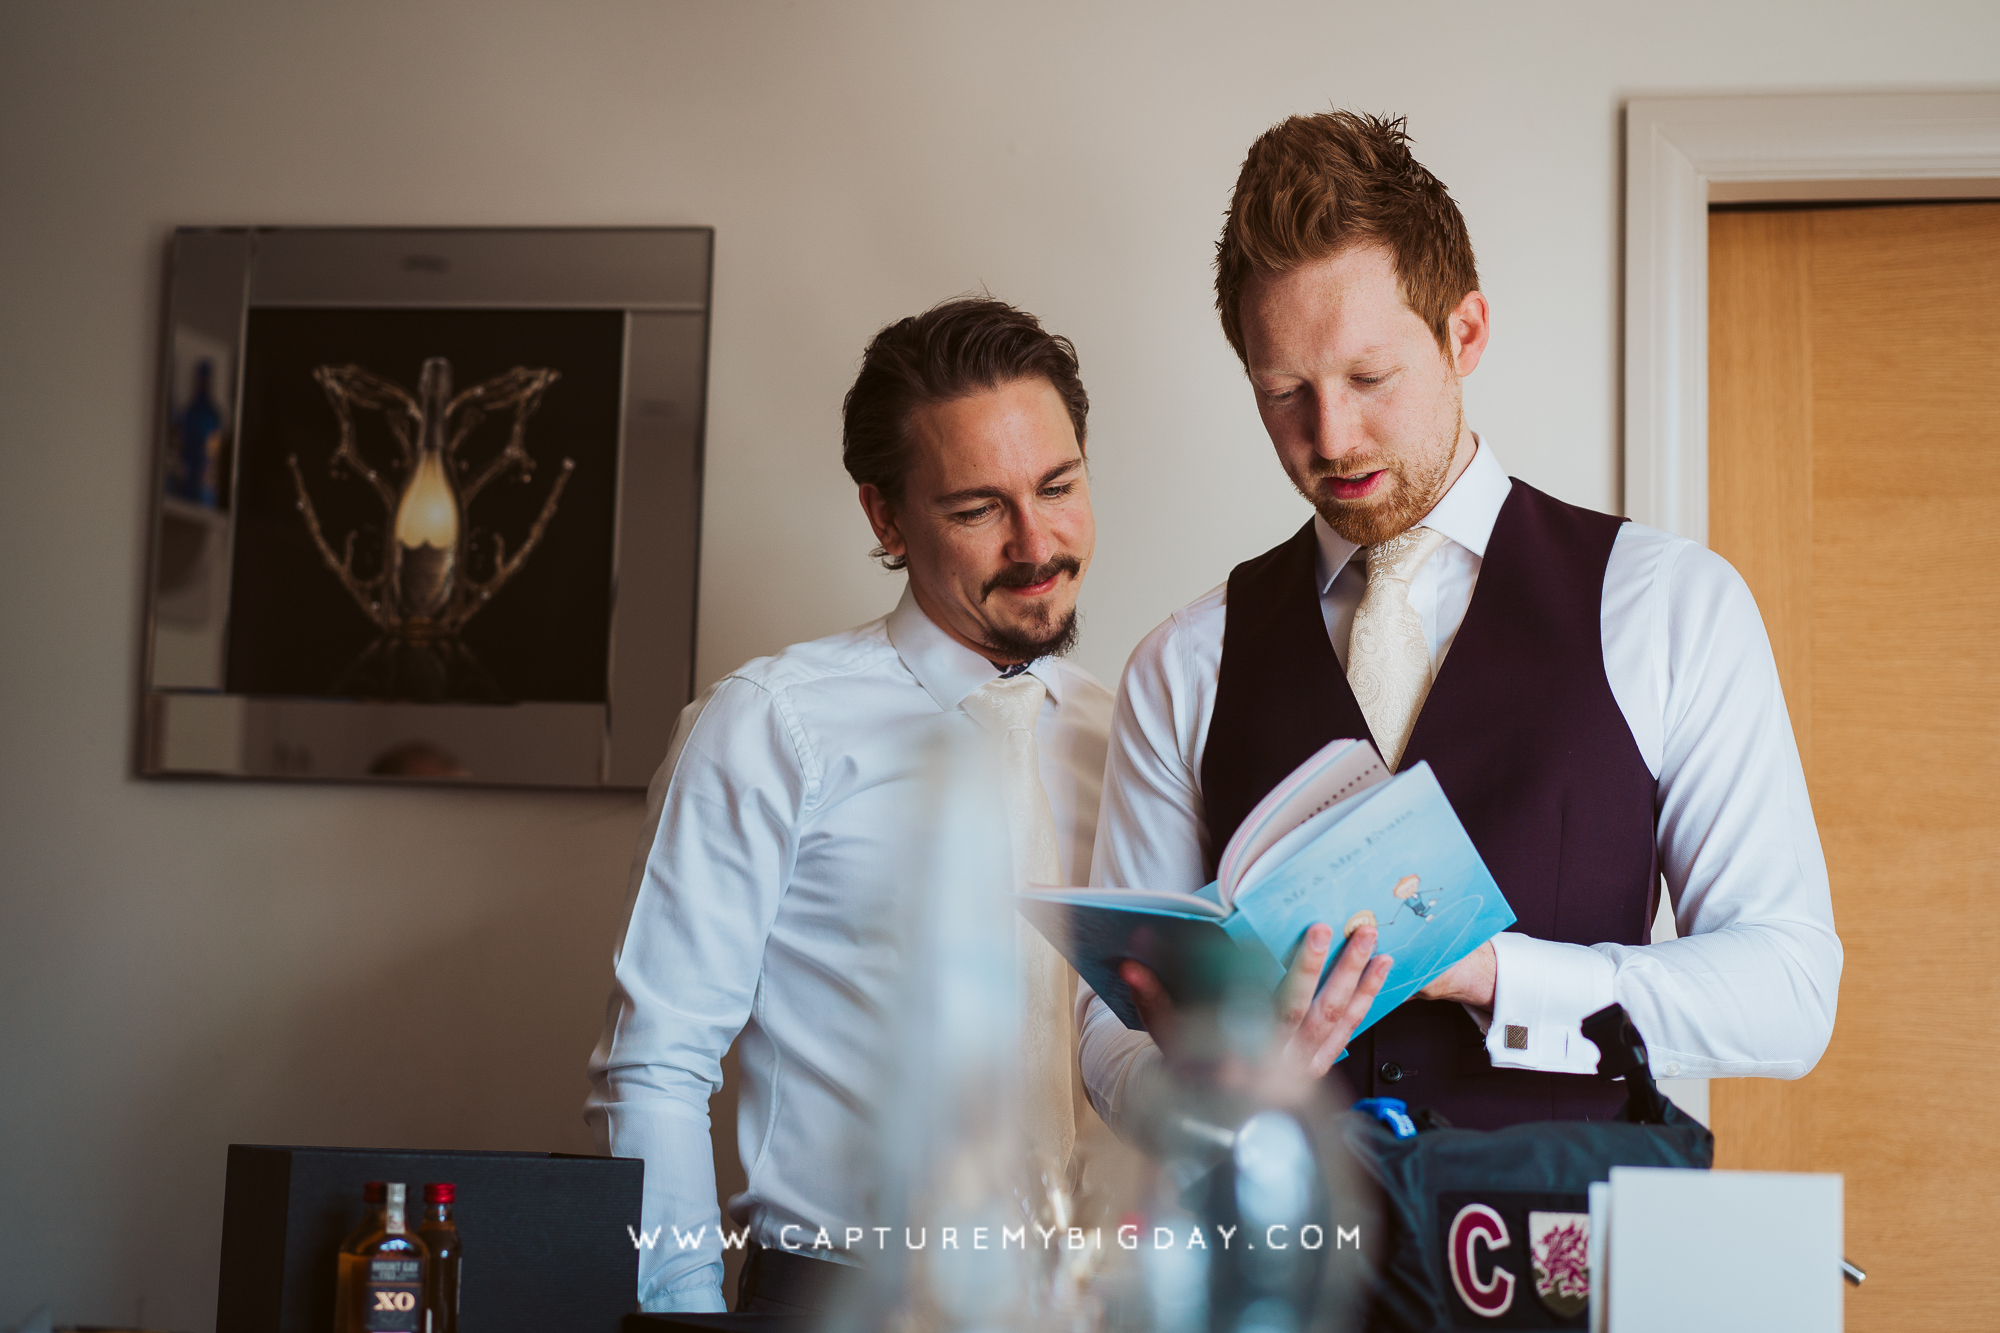 groom reading his gift book from bride